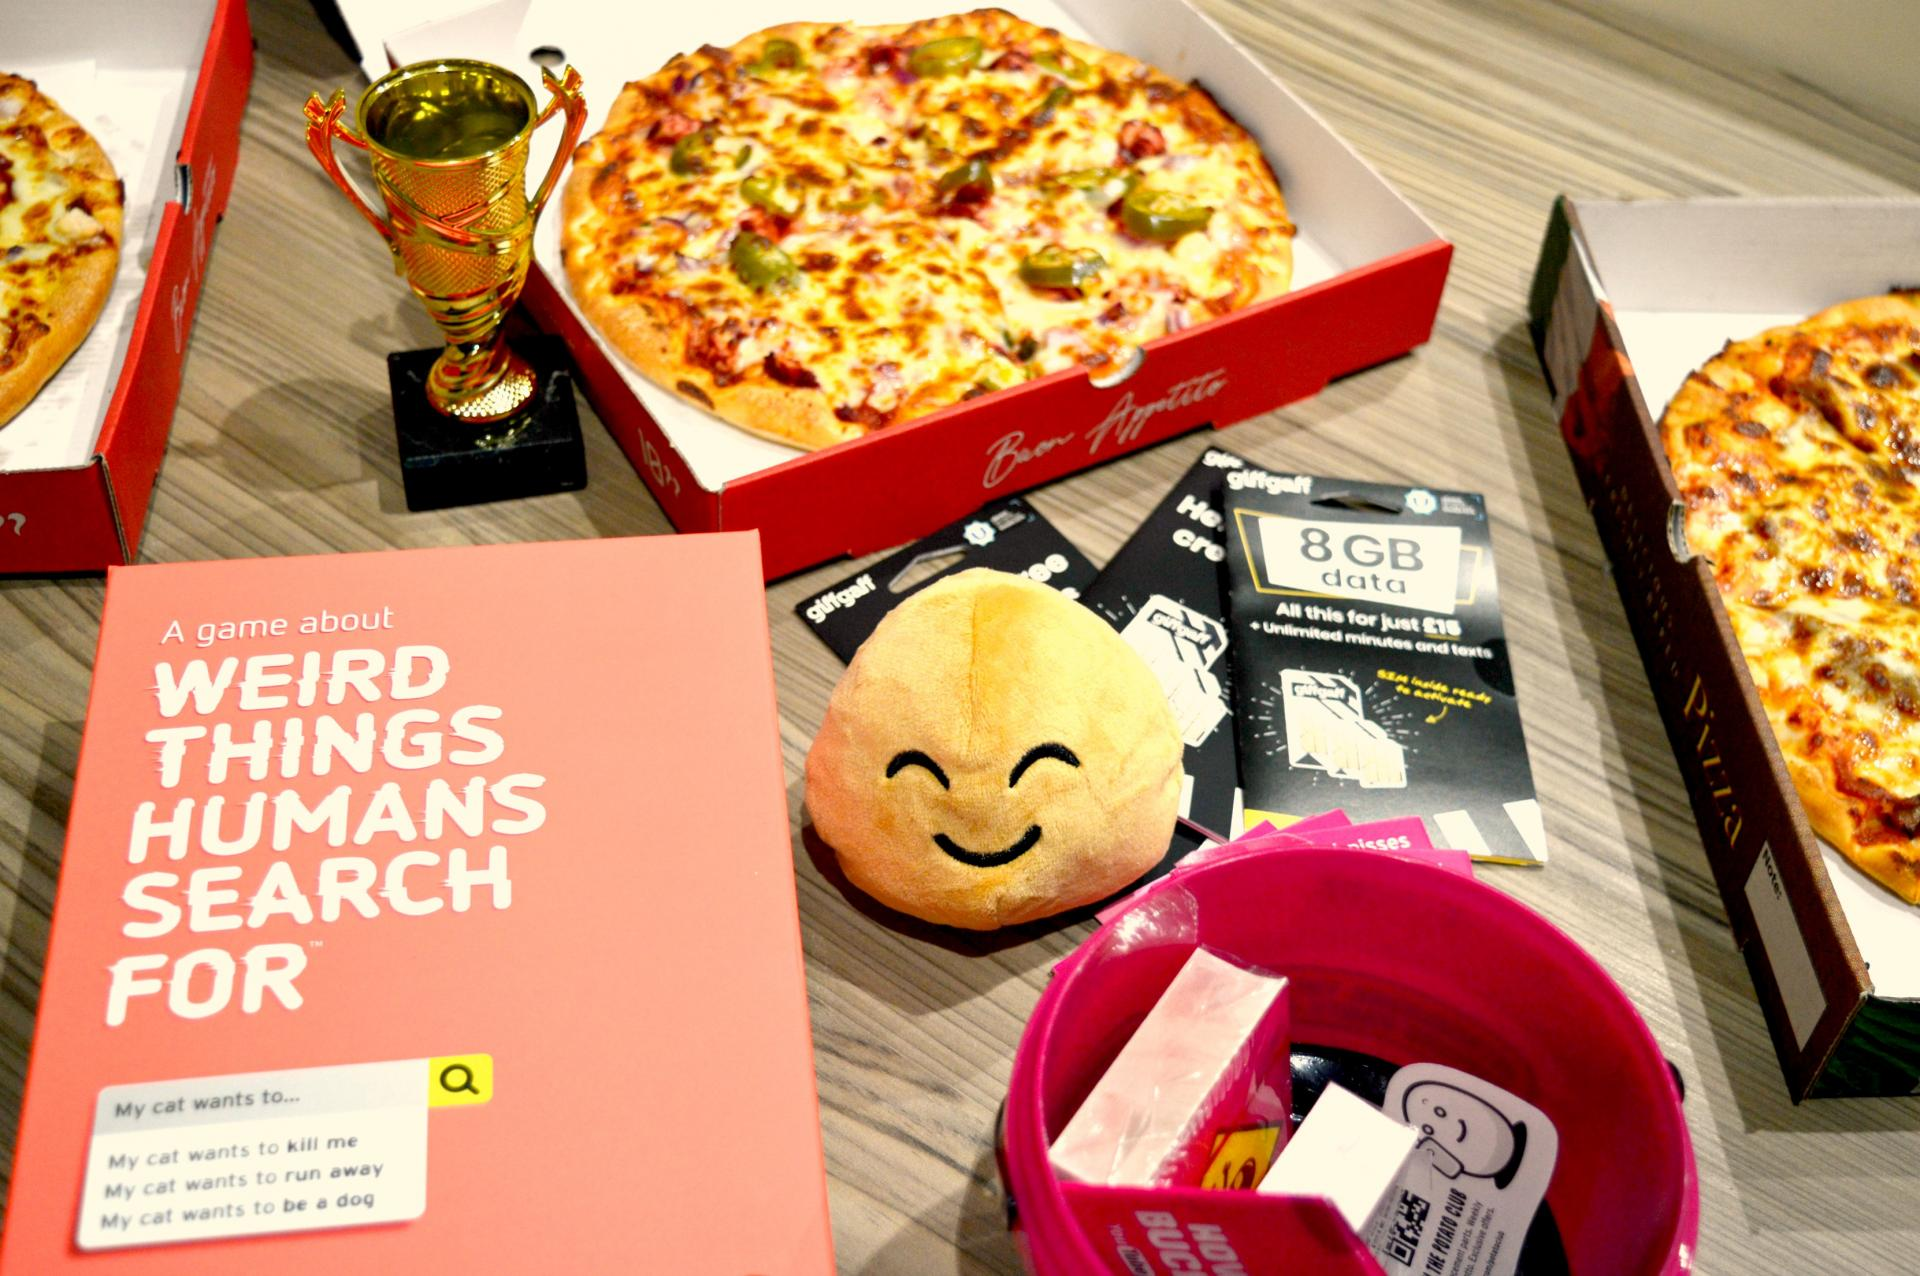 This is an image featuring pizza, a trophy, sim cards and board games along with a cute plush potato which were all very kindly gifted to me as part of the #GiffGaffGamers campaign.